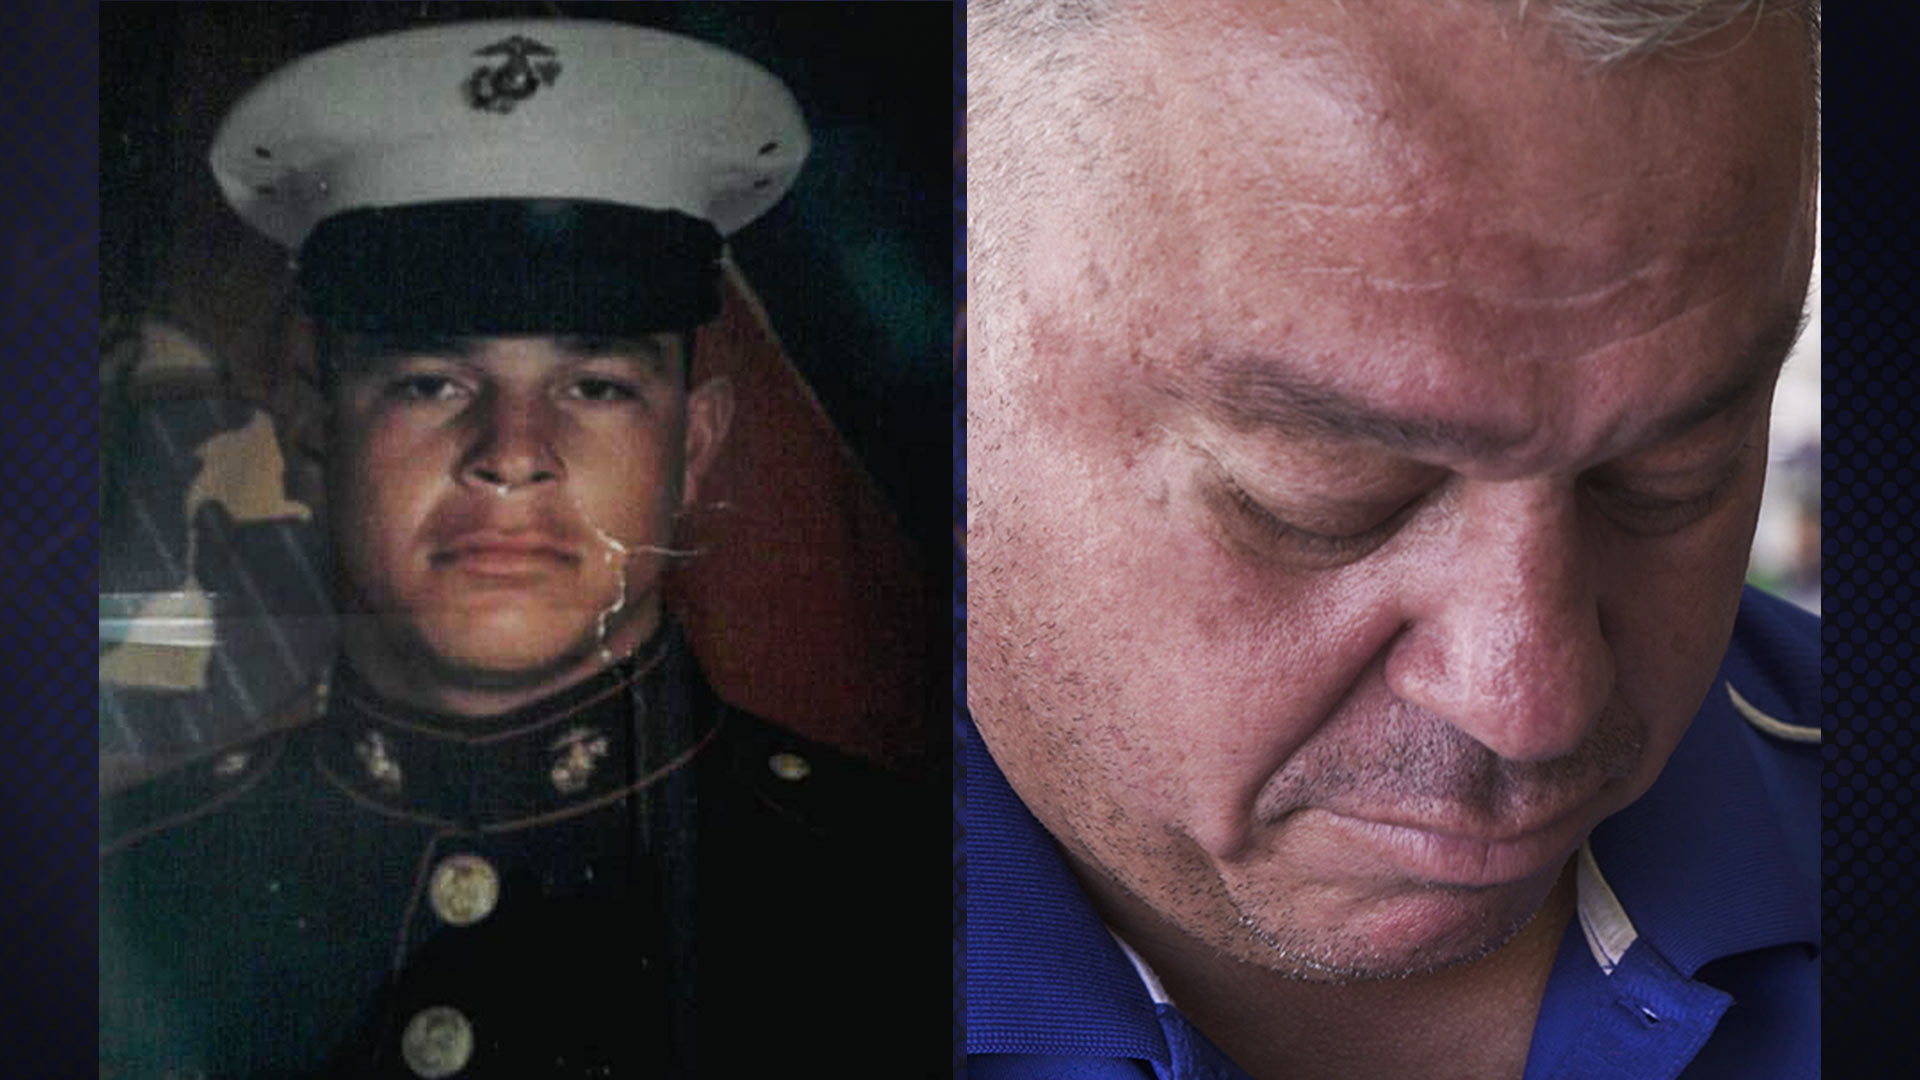 Joel Rincon served in the Marine Corps and was honorably discharged.